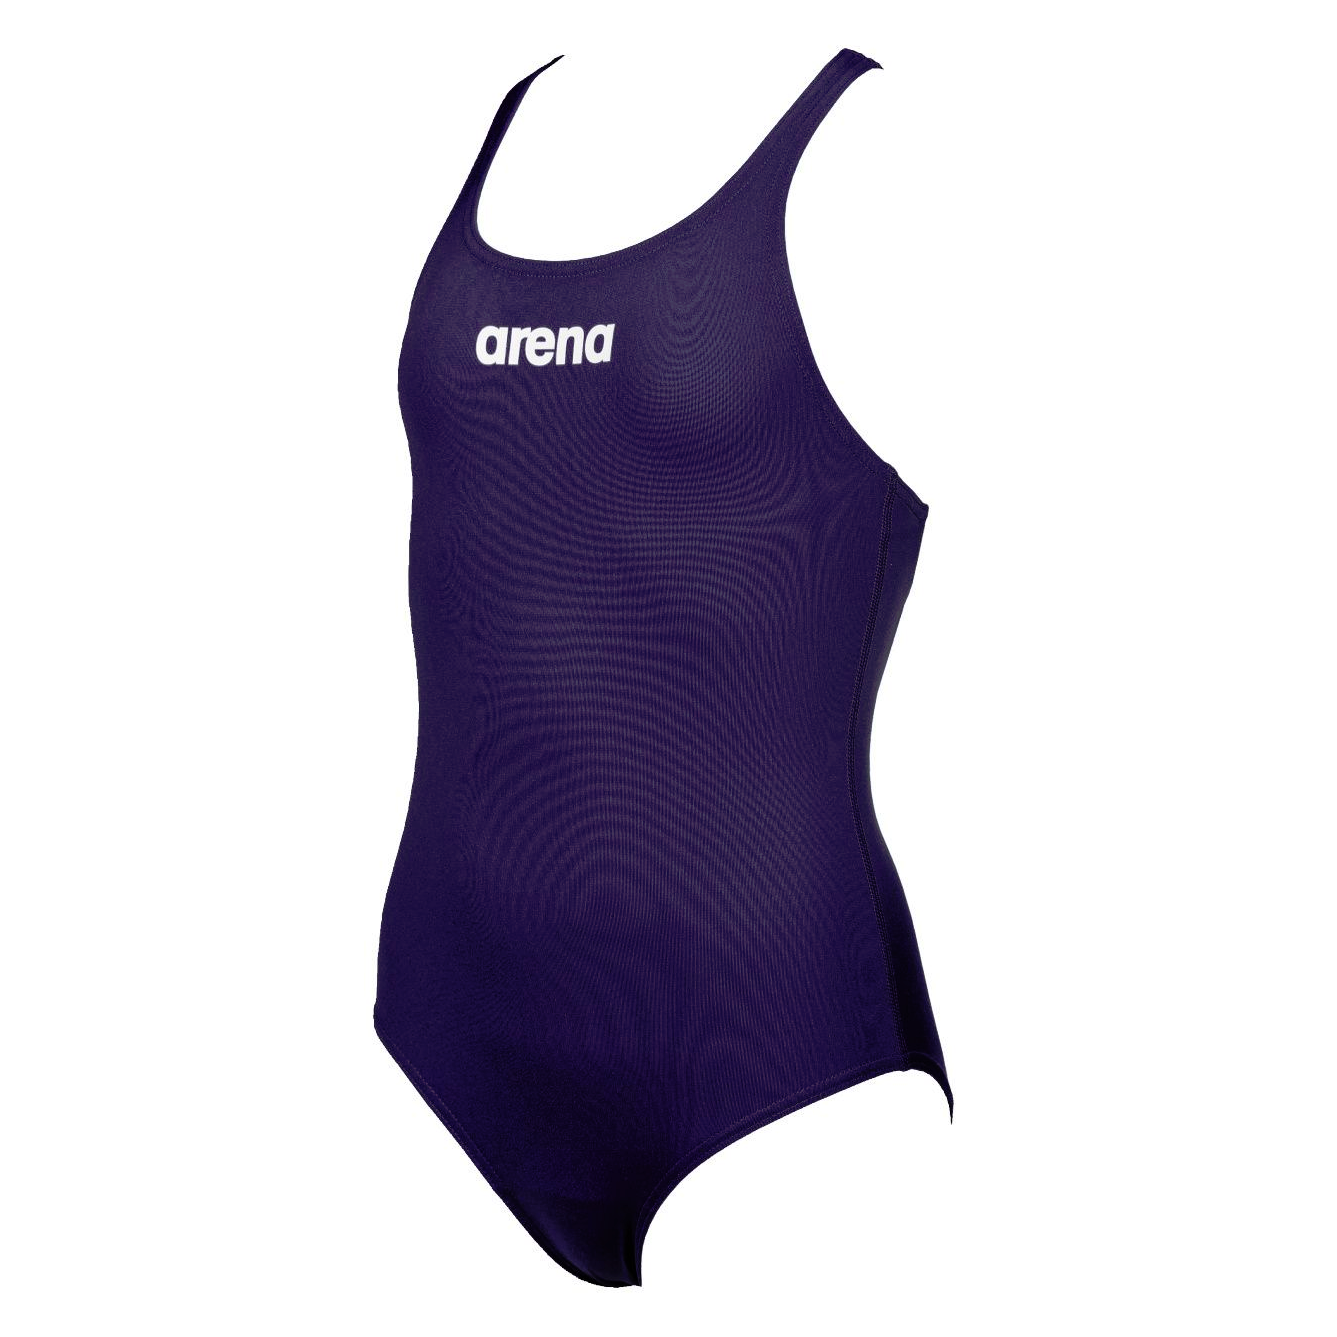 Arena Girl's Solid Swim Pro Jr Swimsuit